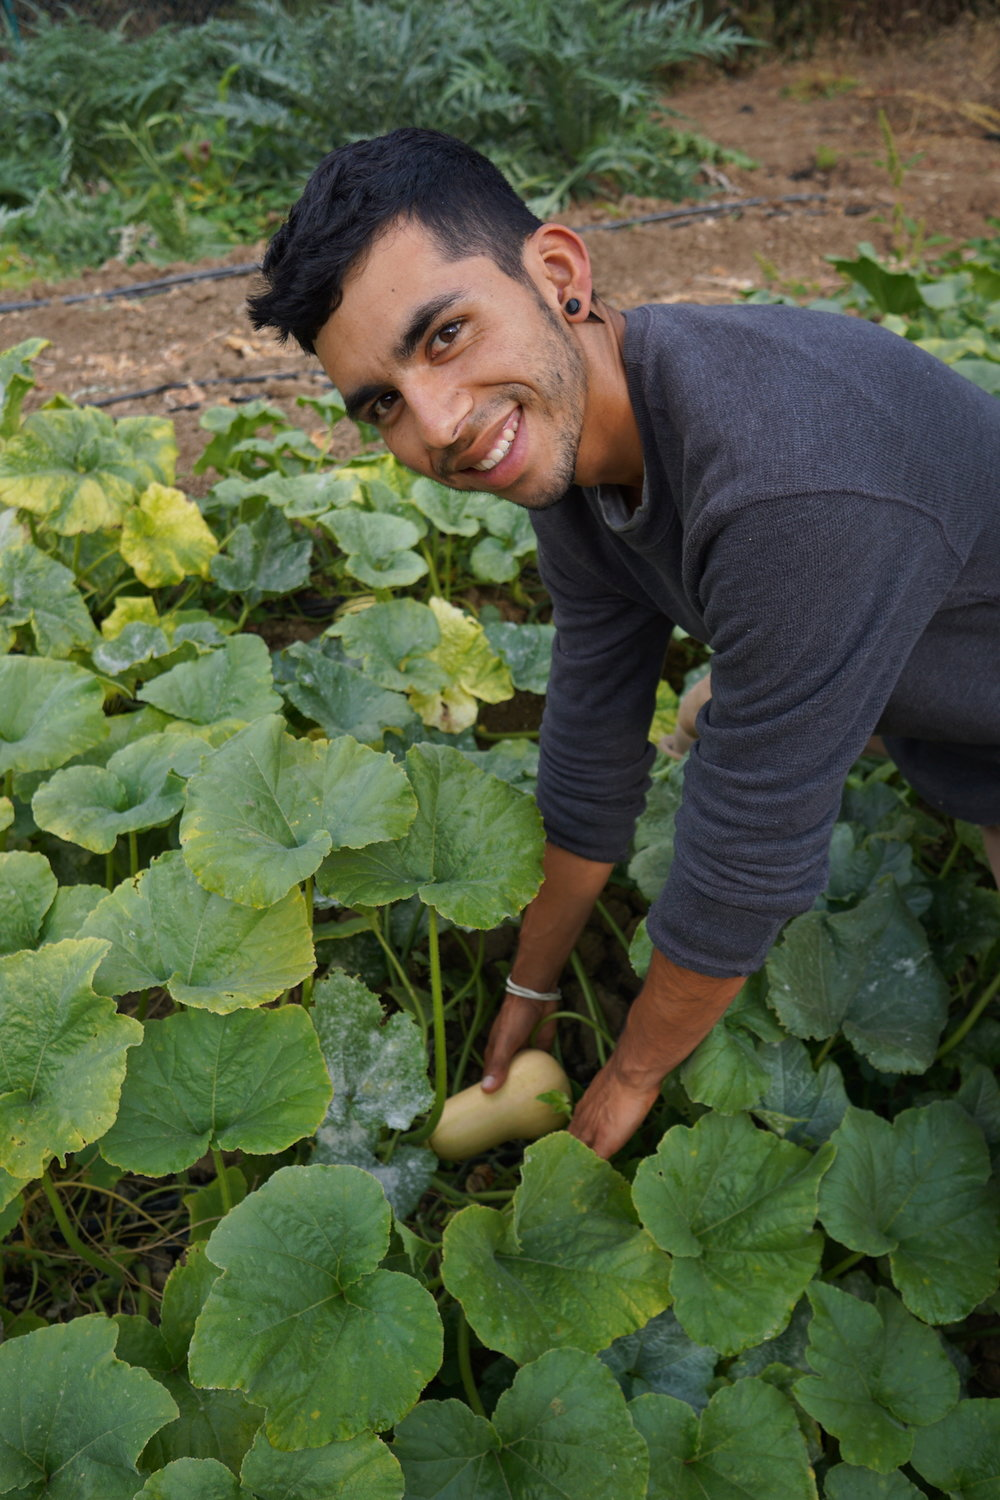 David Robles: Food Systems, Social & Environmental Justice